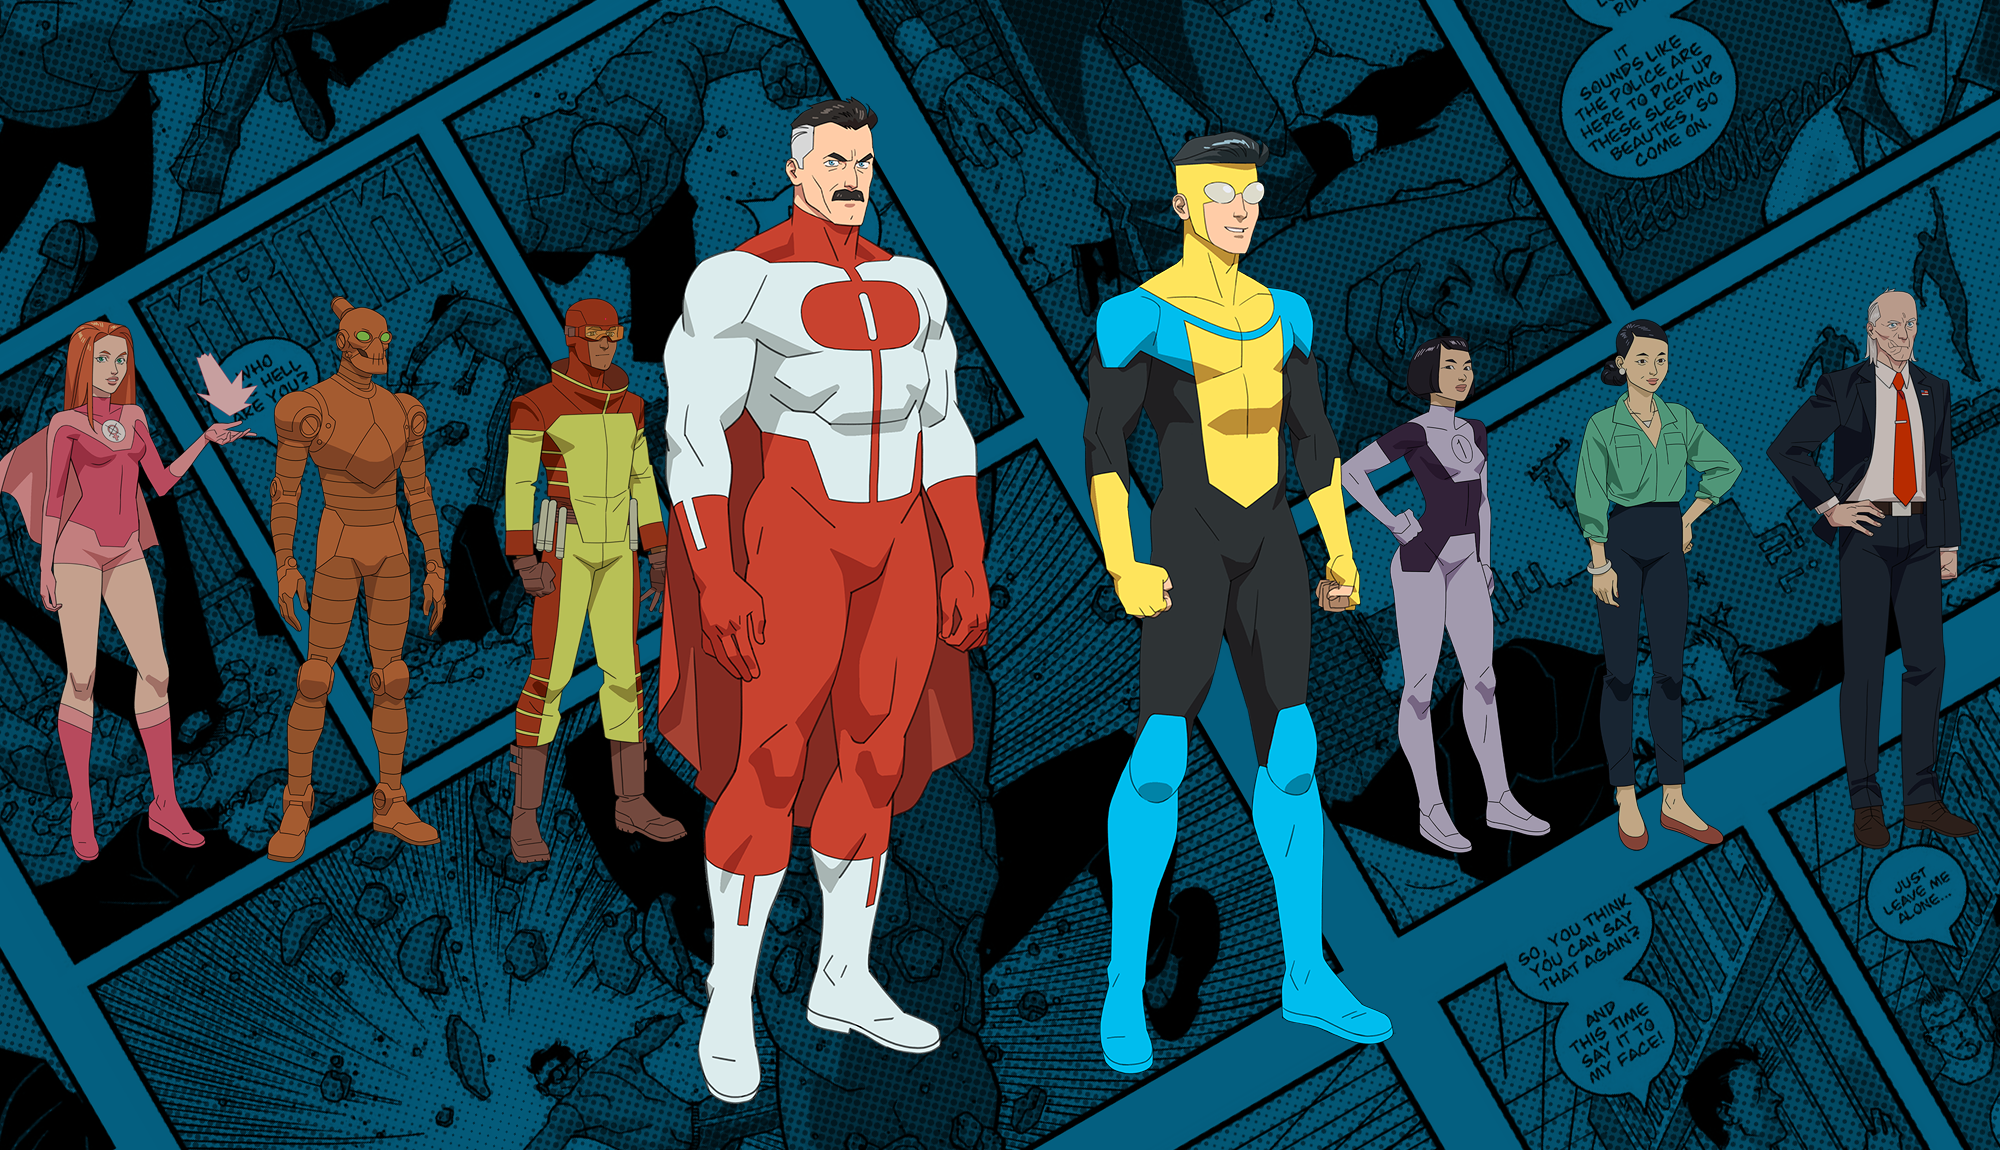 Cory Walker's character designs for INVINCIBLE animated series